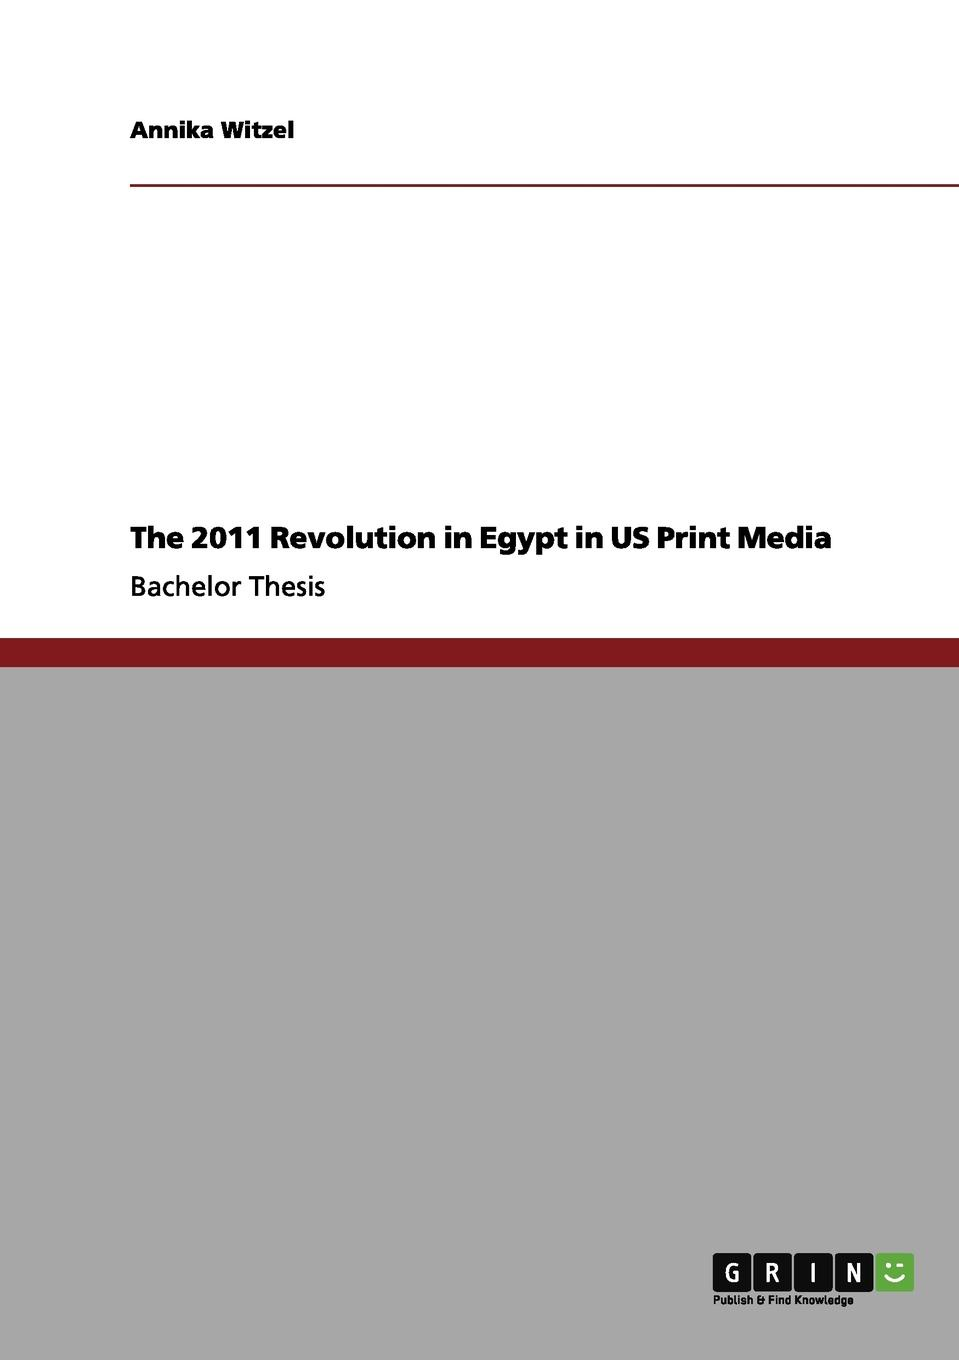 Annika Witzel The 2011 Revolution in Egypt in US Print Media browne abdullah bonaparte in egypt and the egyptians of to day